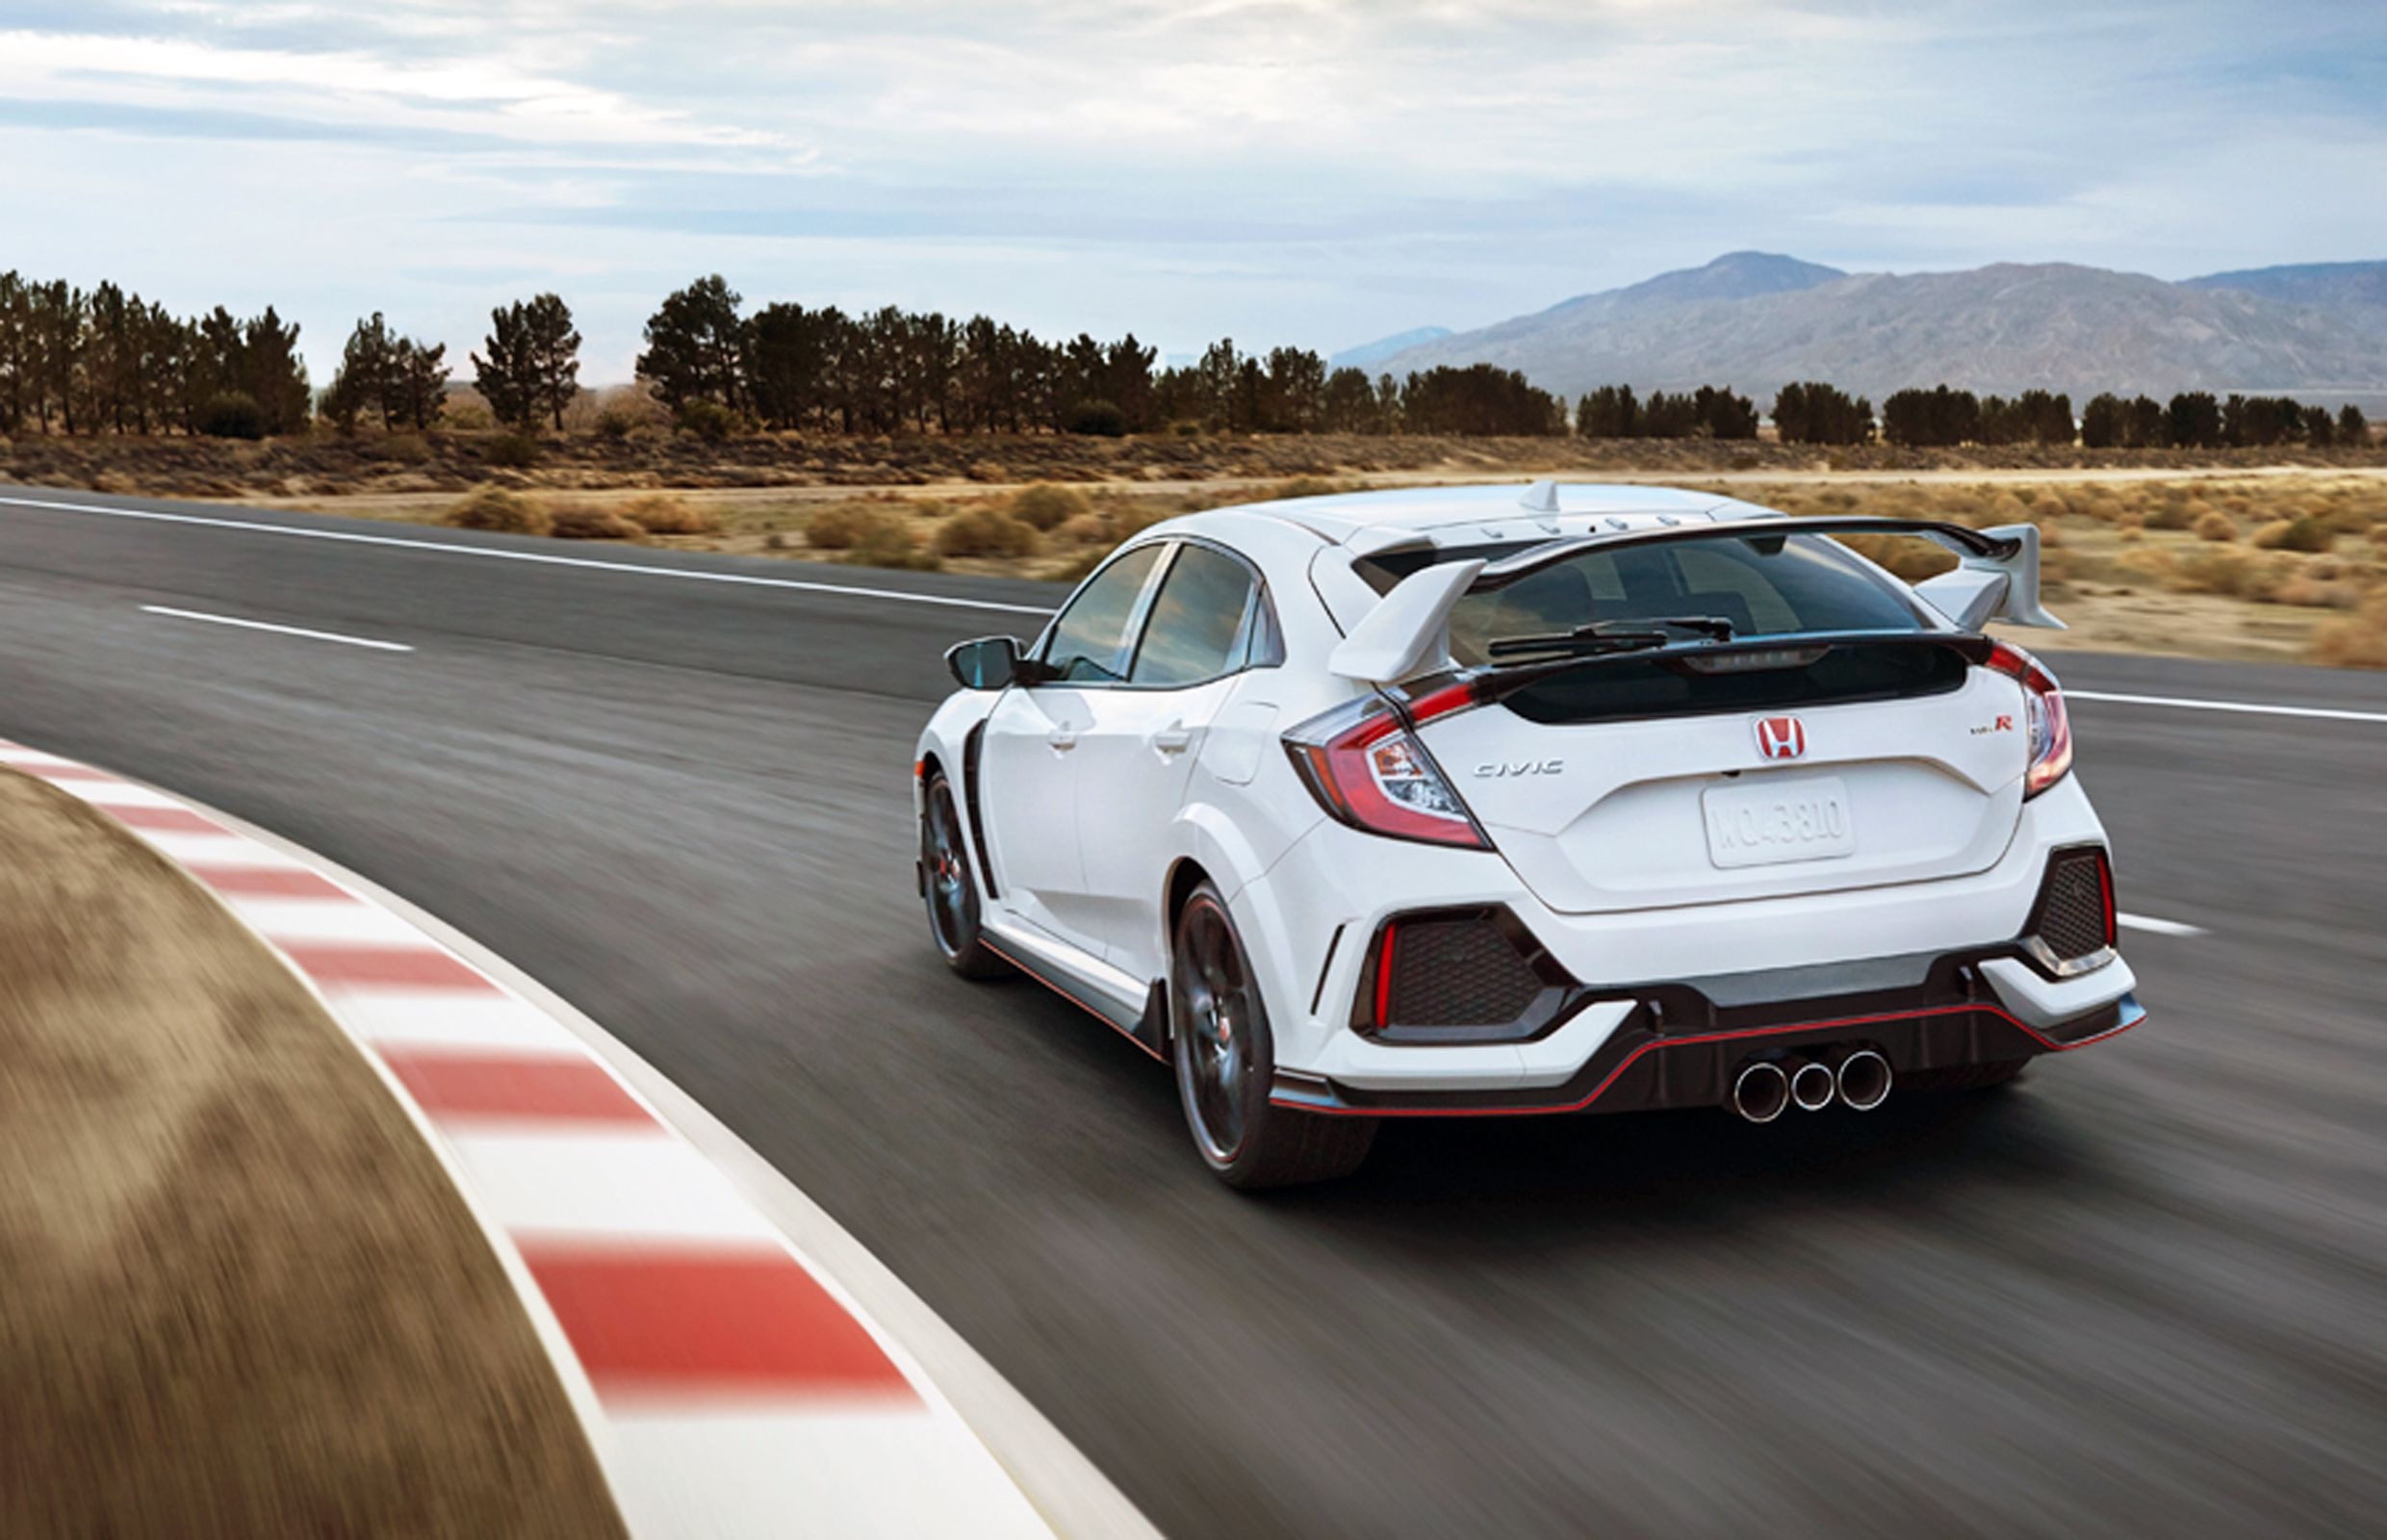 2017 Civic Type R